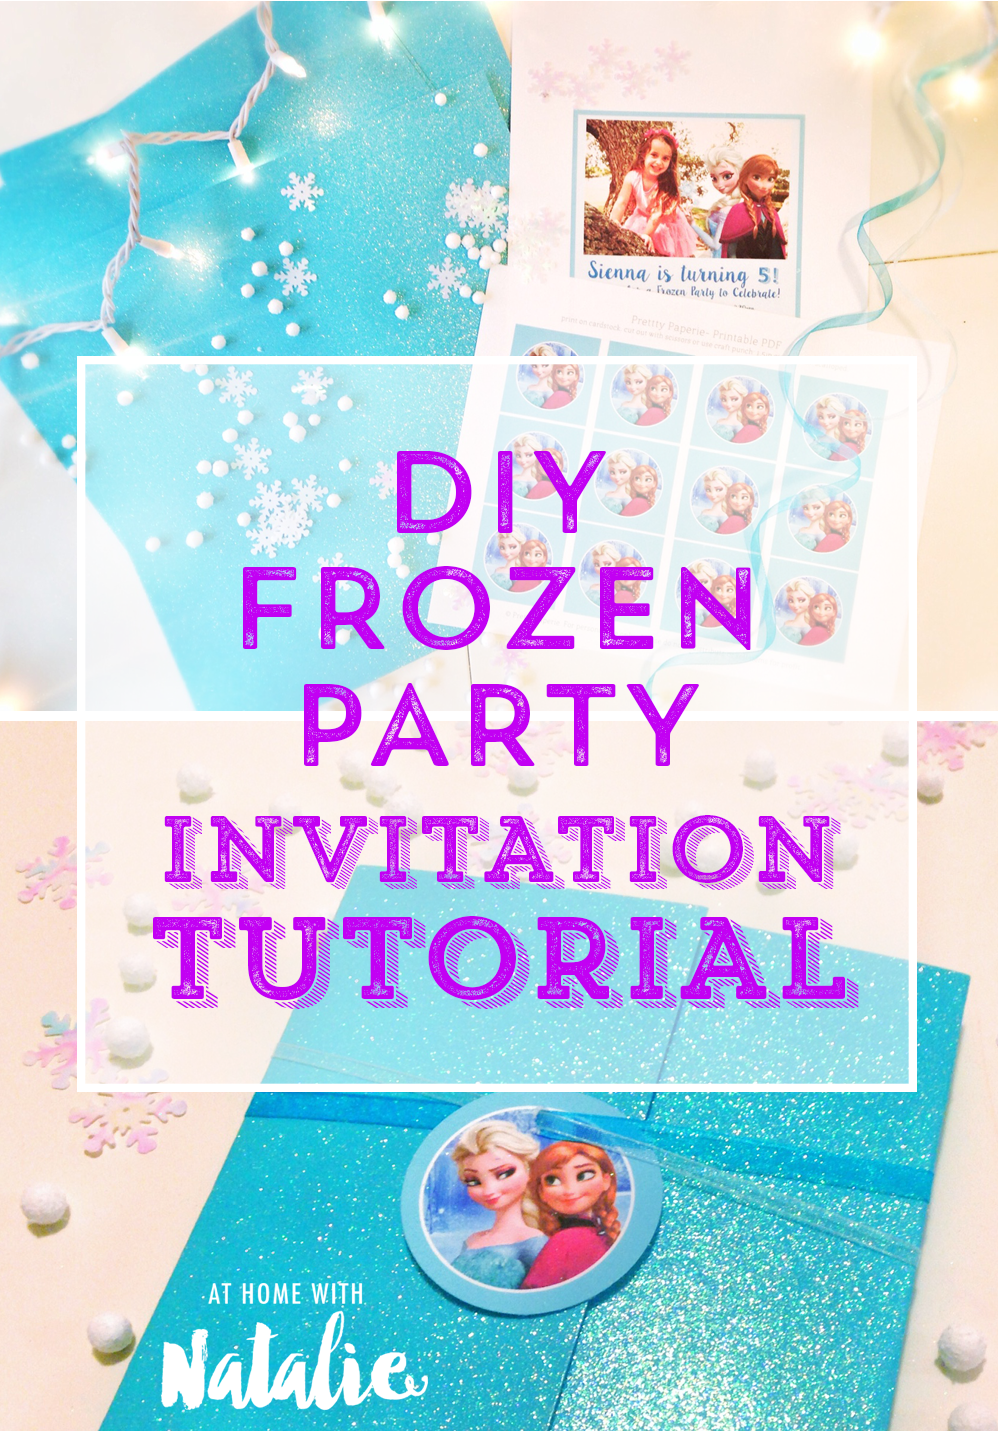 photograph about Free Printable Frozen Invites called Do-it-yourself Frozen Get together Invitation Manual-Absolutely free Printable! At